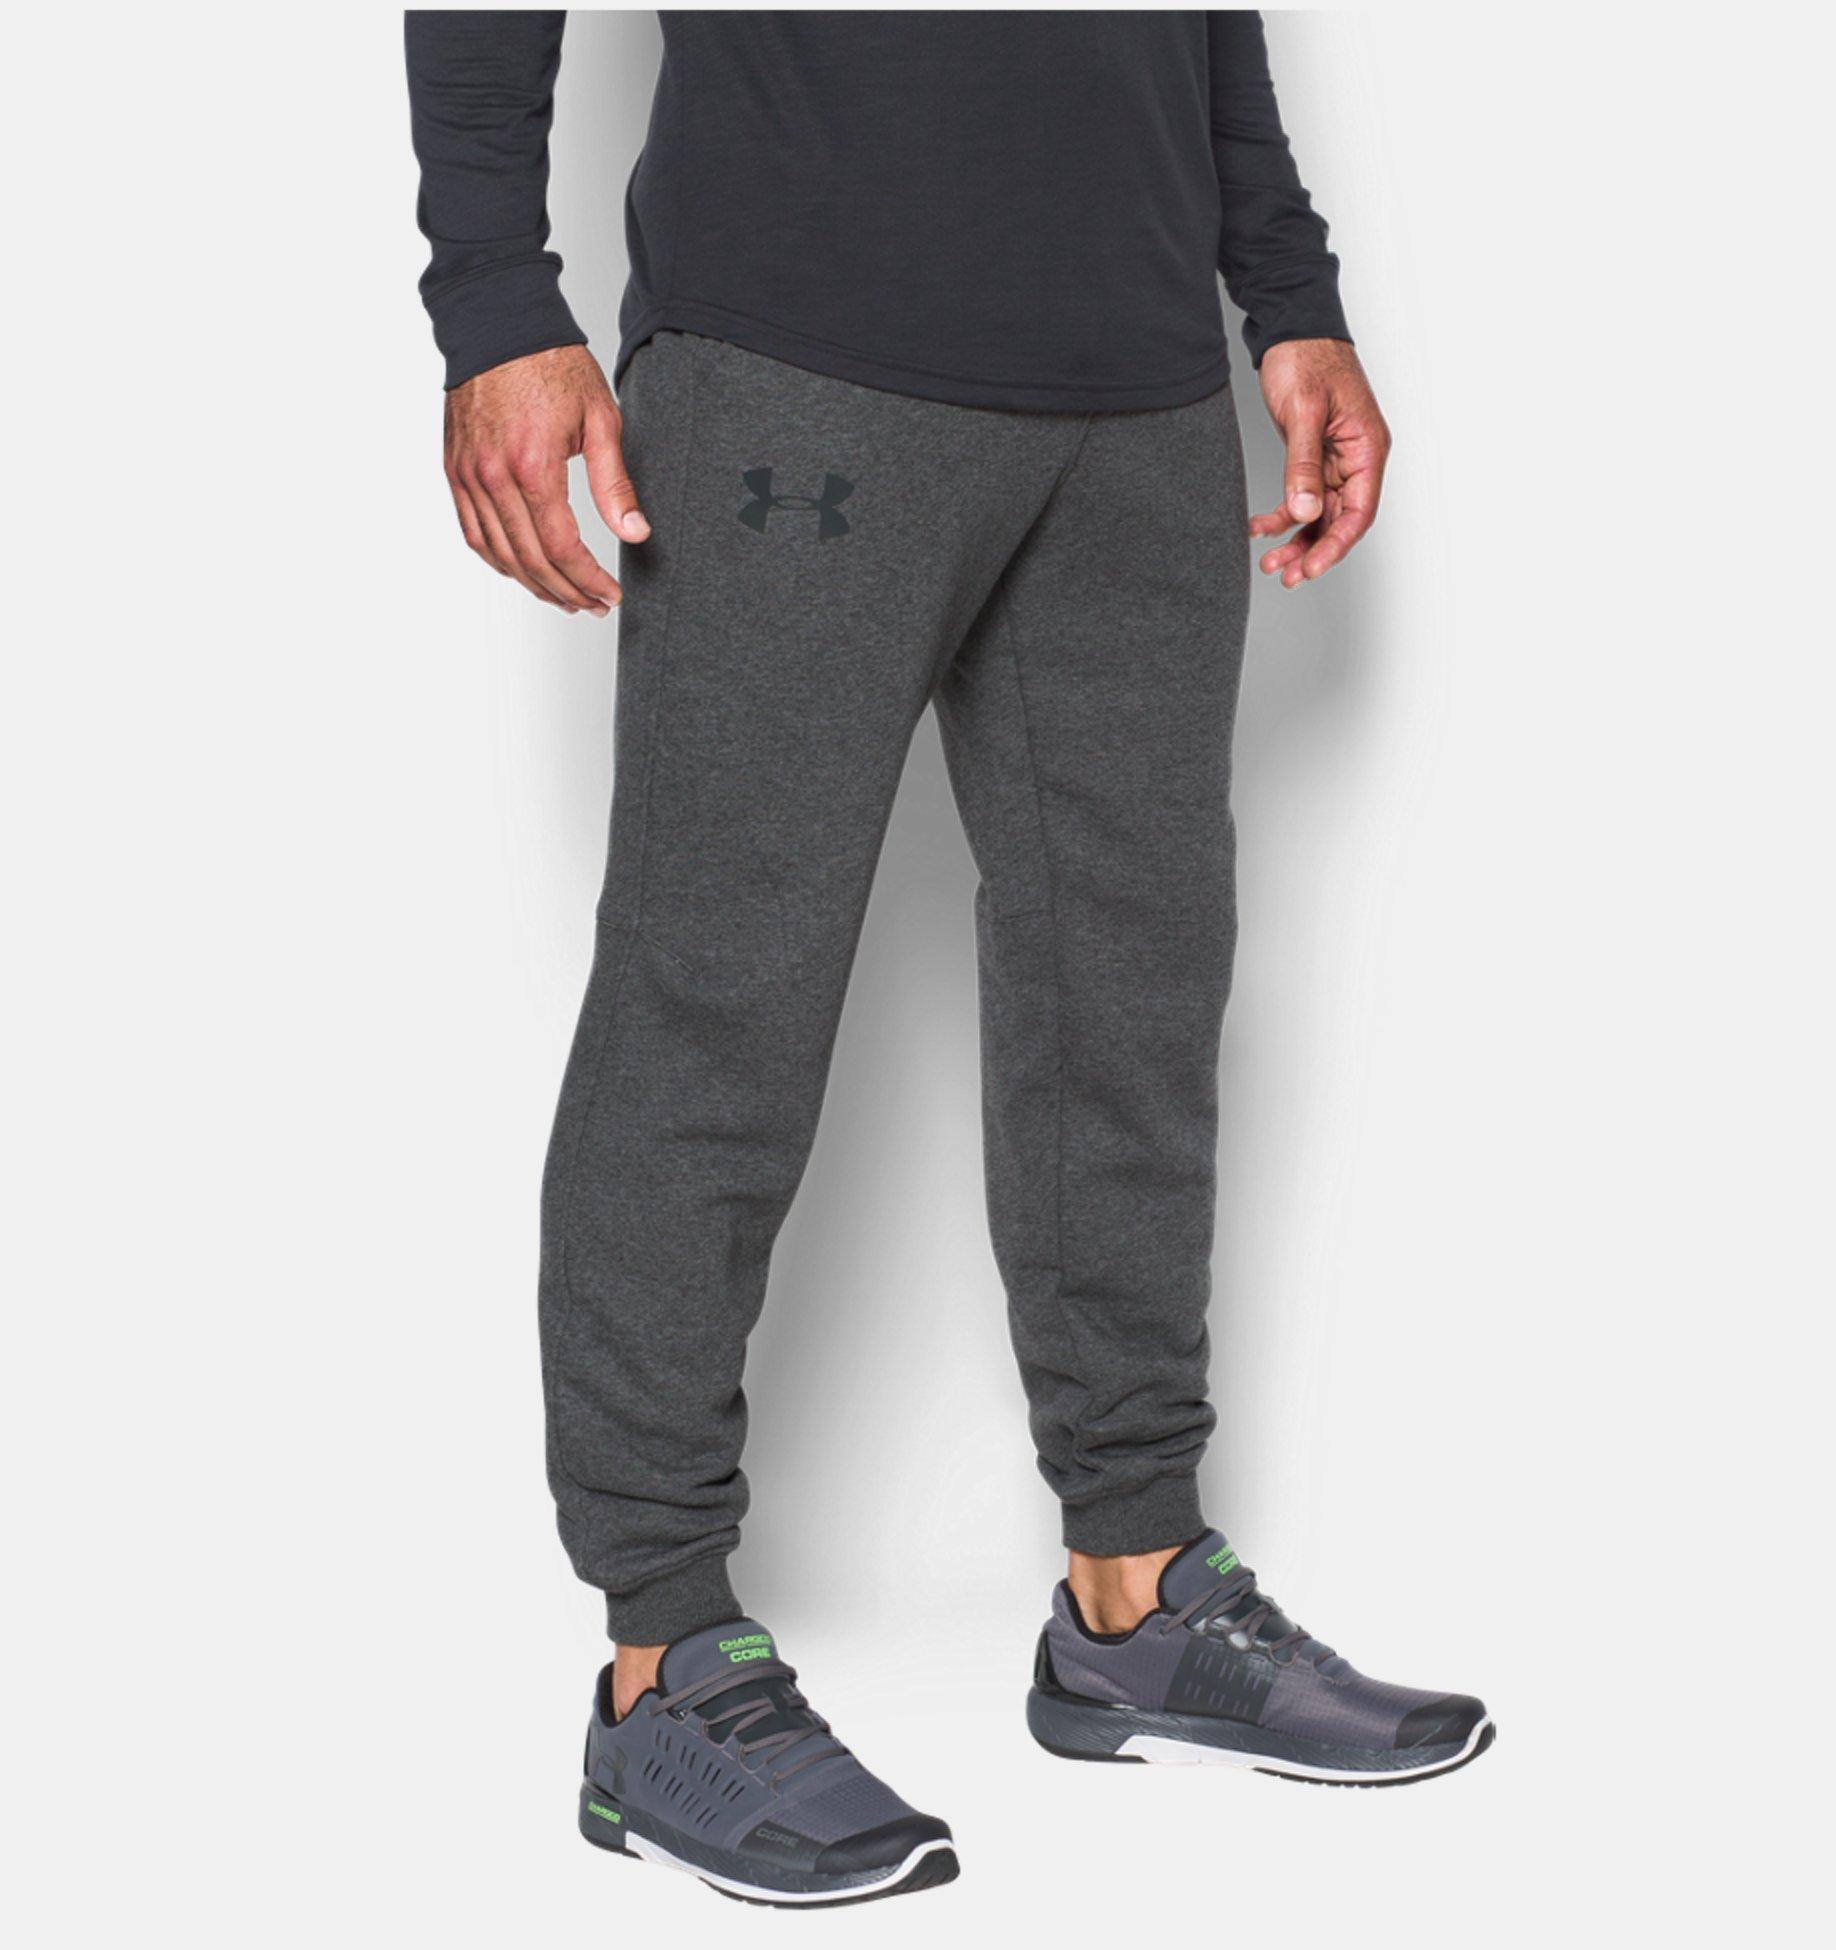 Men's Exercise & Fitness T-Shirts; Women's Running Clothing; Men's Compression Base Layers; Men's Base Layers Shirts; Men's Exercise & Fitness Longsleeve Tops.